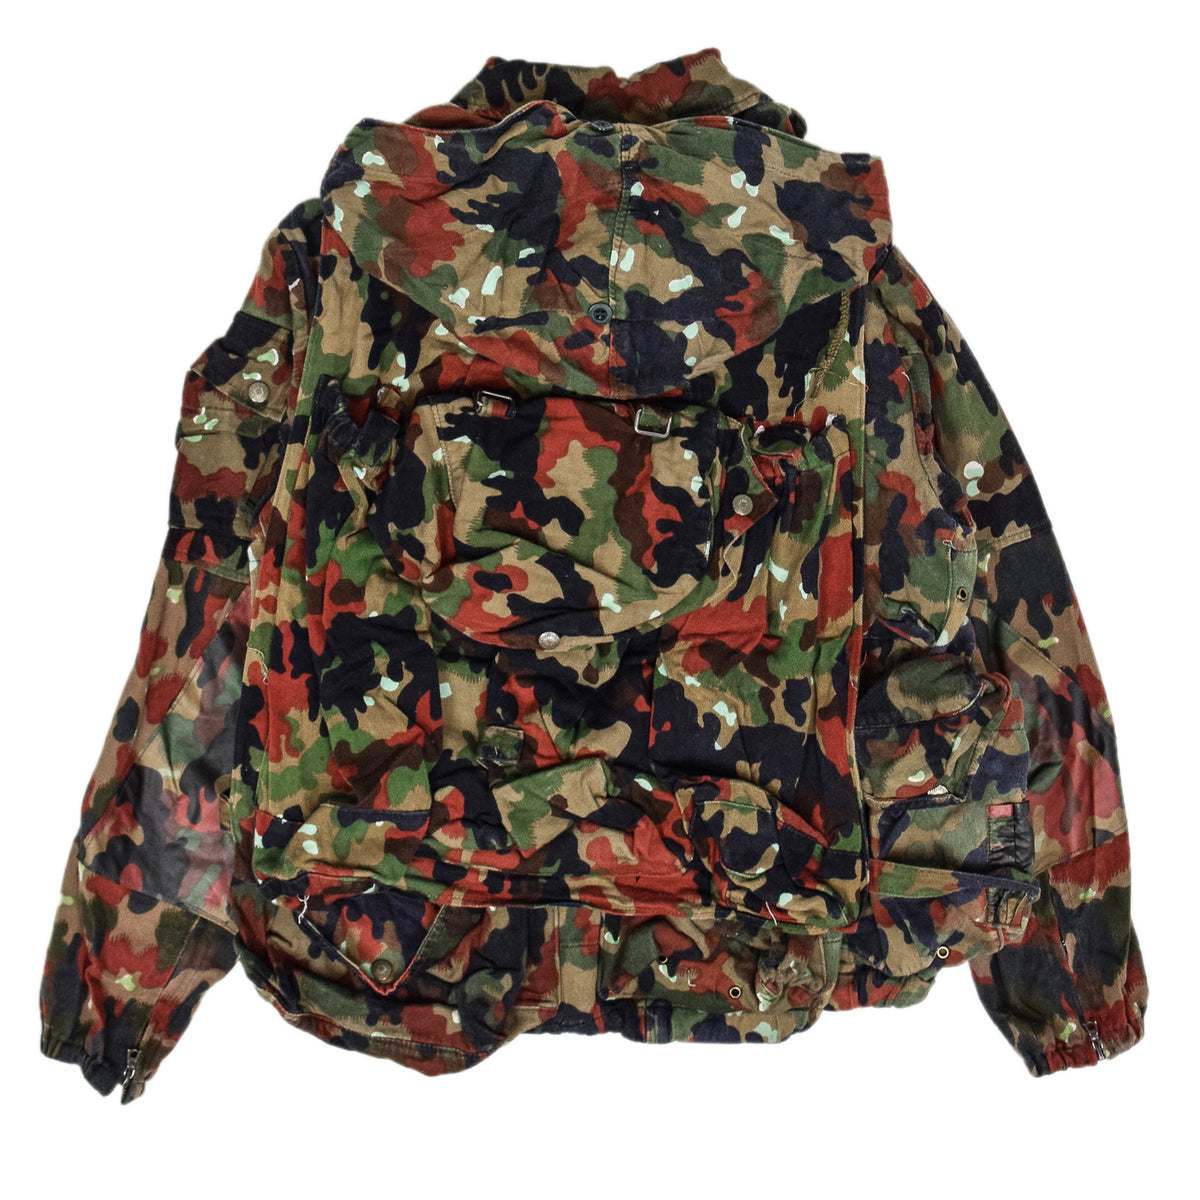 Vintage 70s Swiss Army Alpenflage Camo Sniper Combat Field Jacket BACK